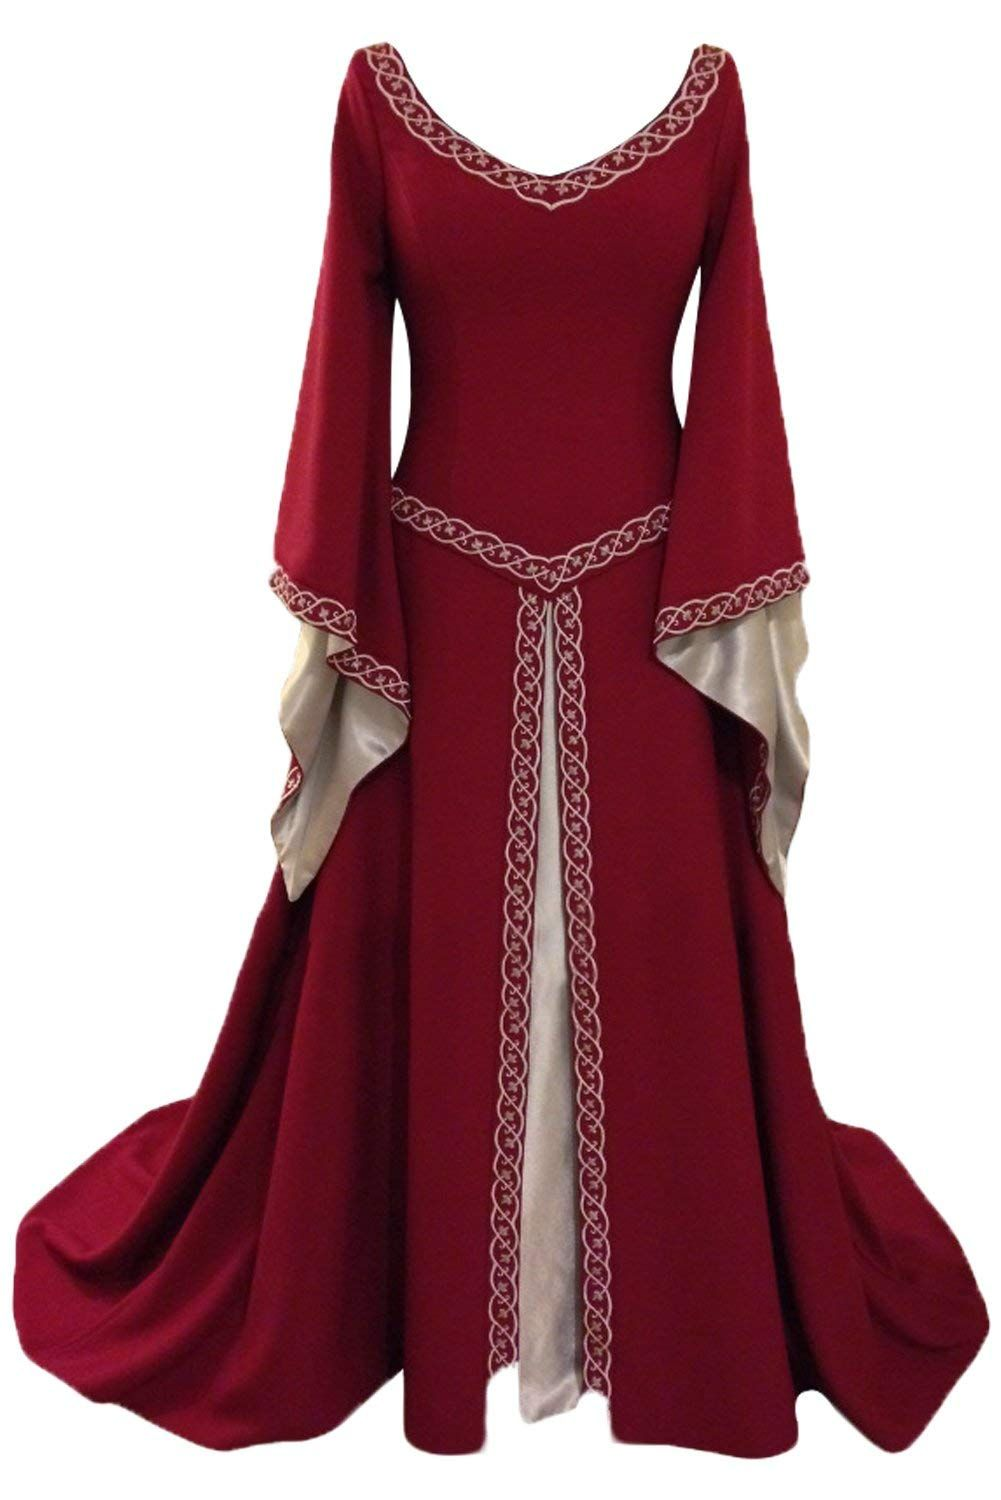 Women\'s Medieval Period Dress and Gown Costumes | Medieval Women ...